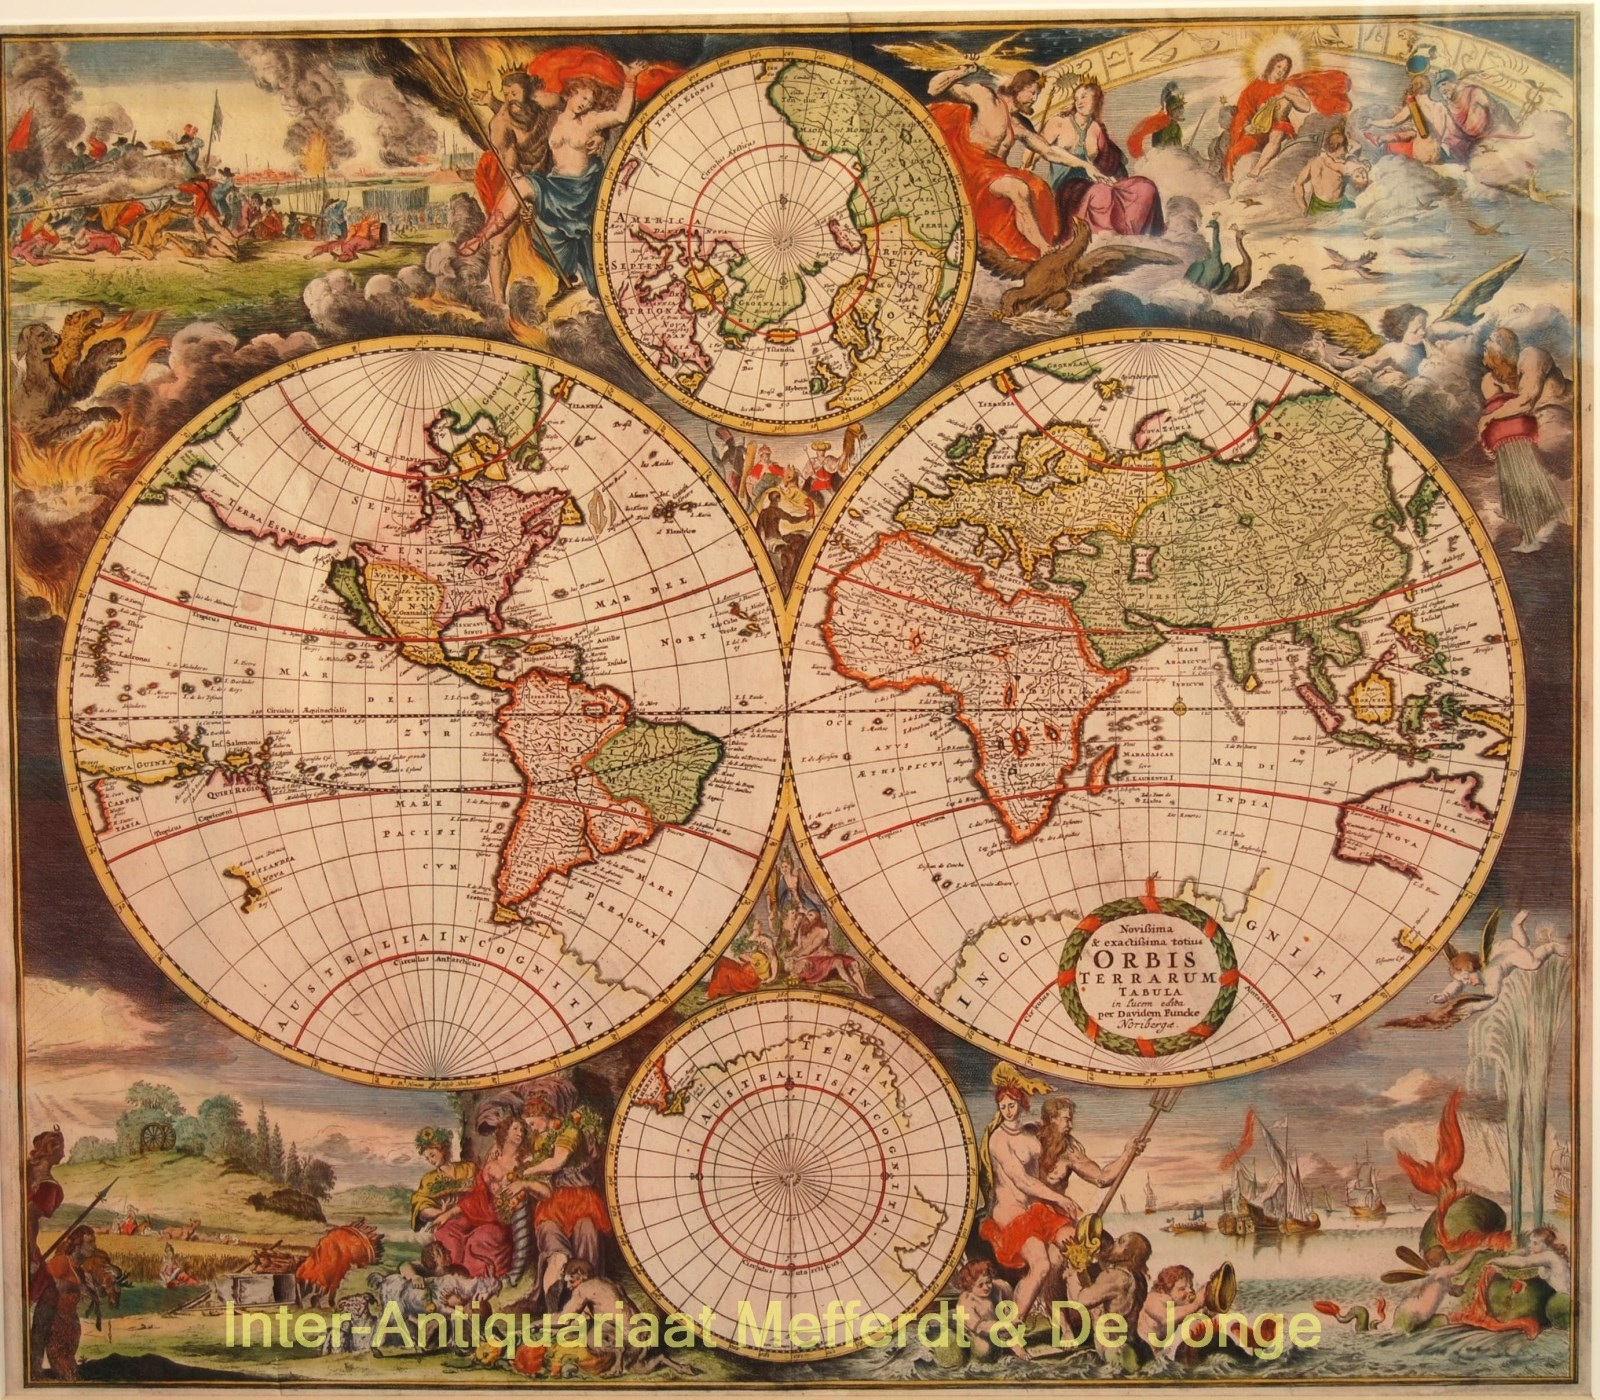 World map - Romein de Hooghe, David Funcke, c. 1700